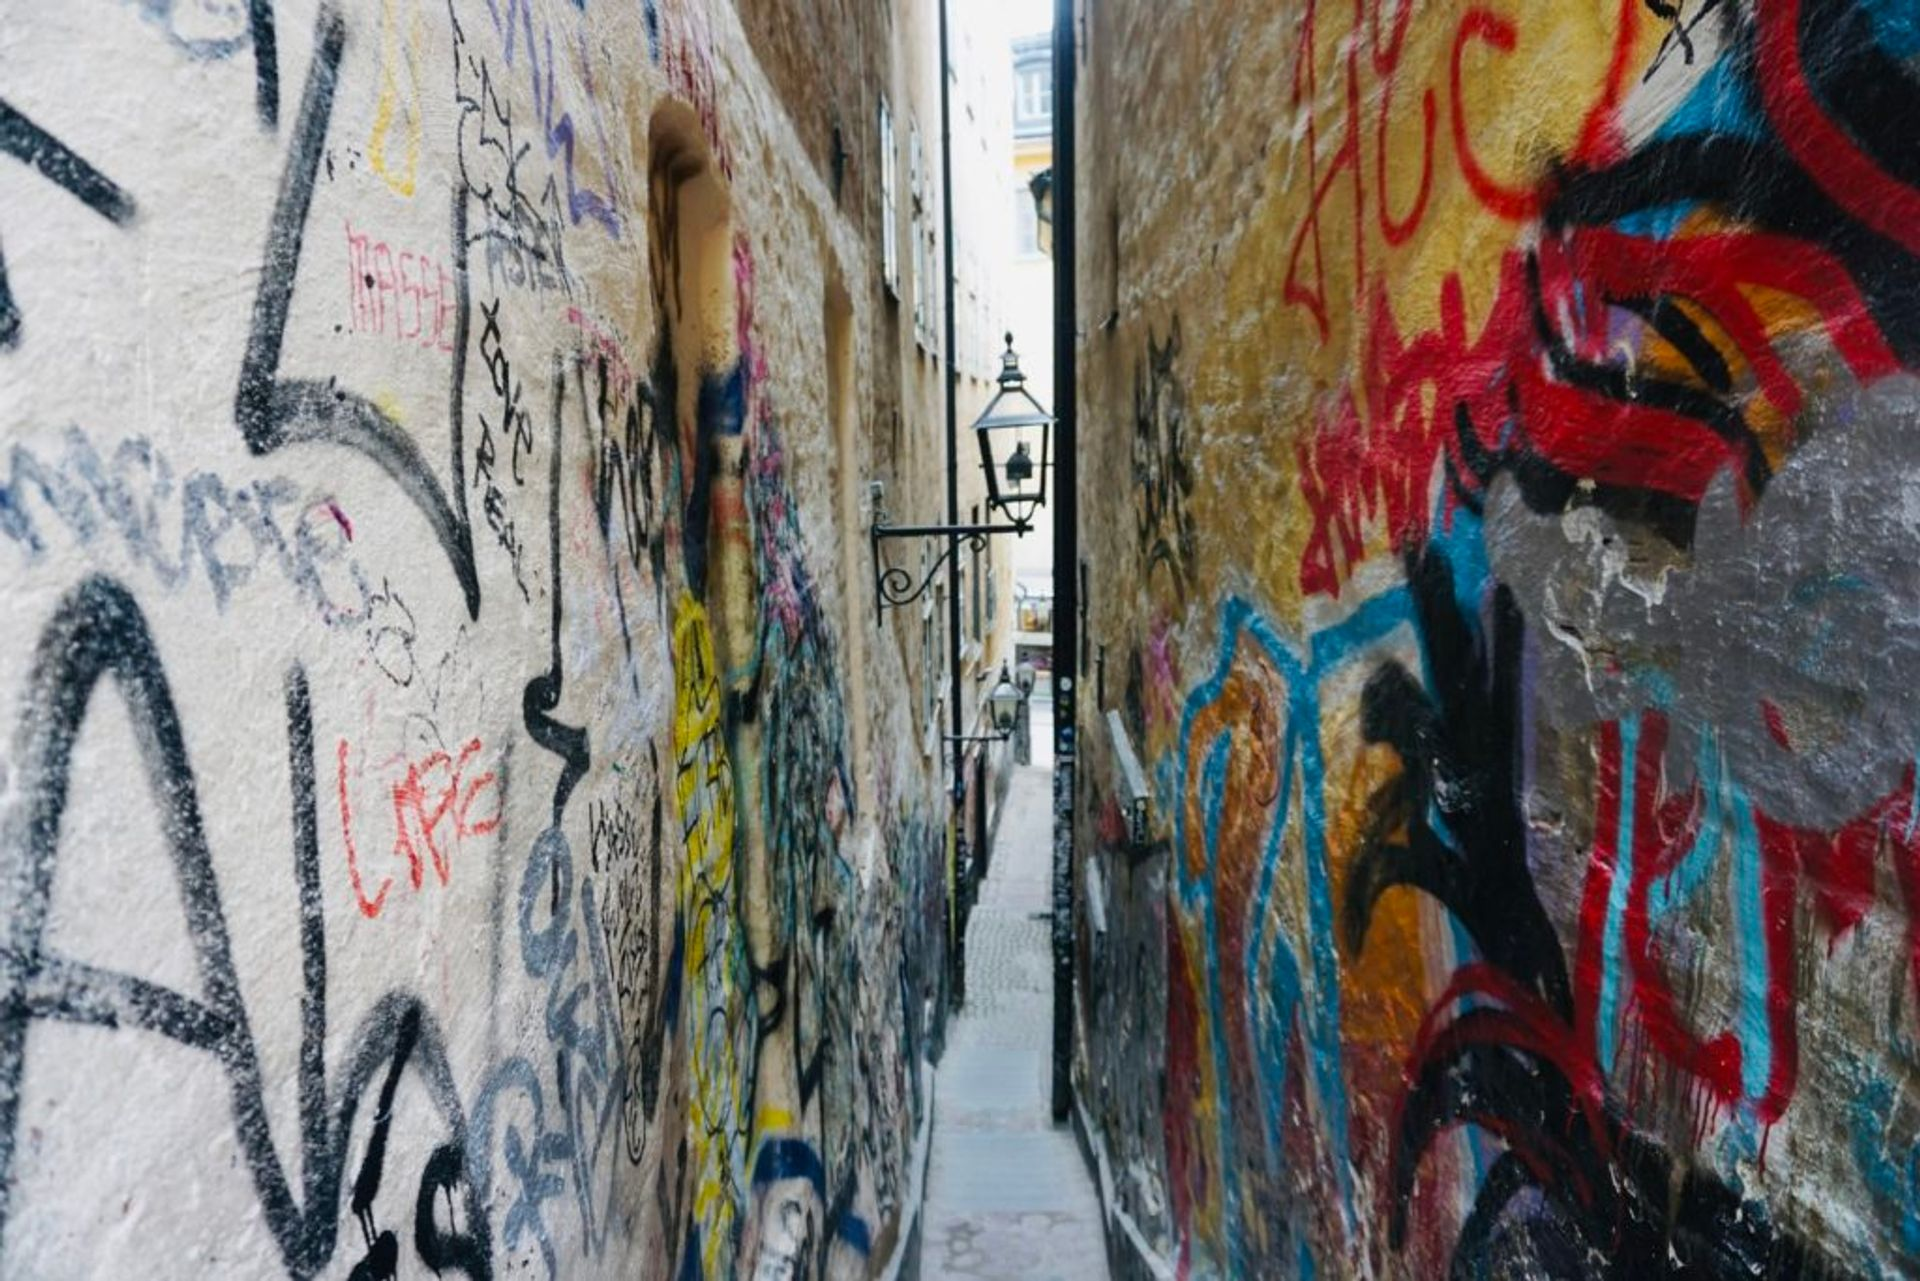 Graffiti covering walls in a narrow alley.